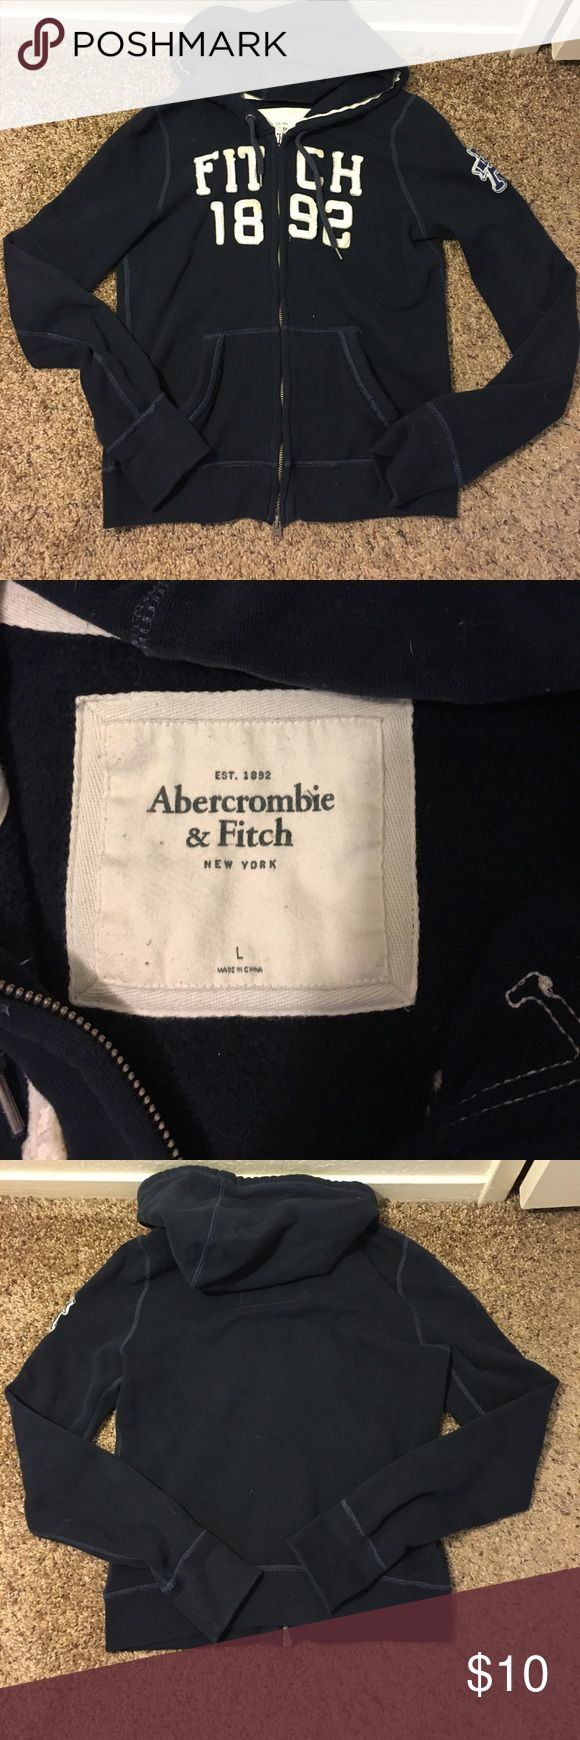 Abercrombie & Fitch Sweatshirt Gently used, like new. Smoke free home. NO TRADES. Abercrombie & Fitch Sweaters